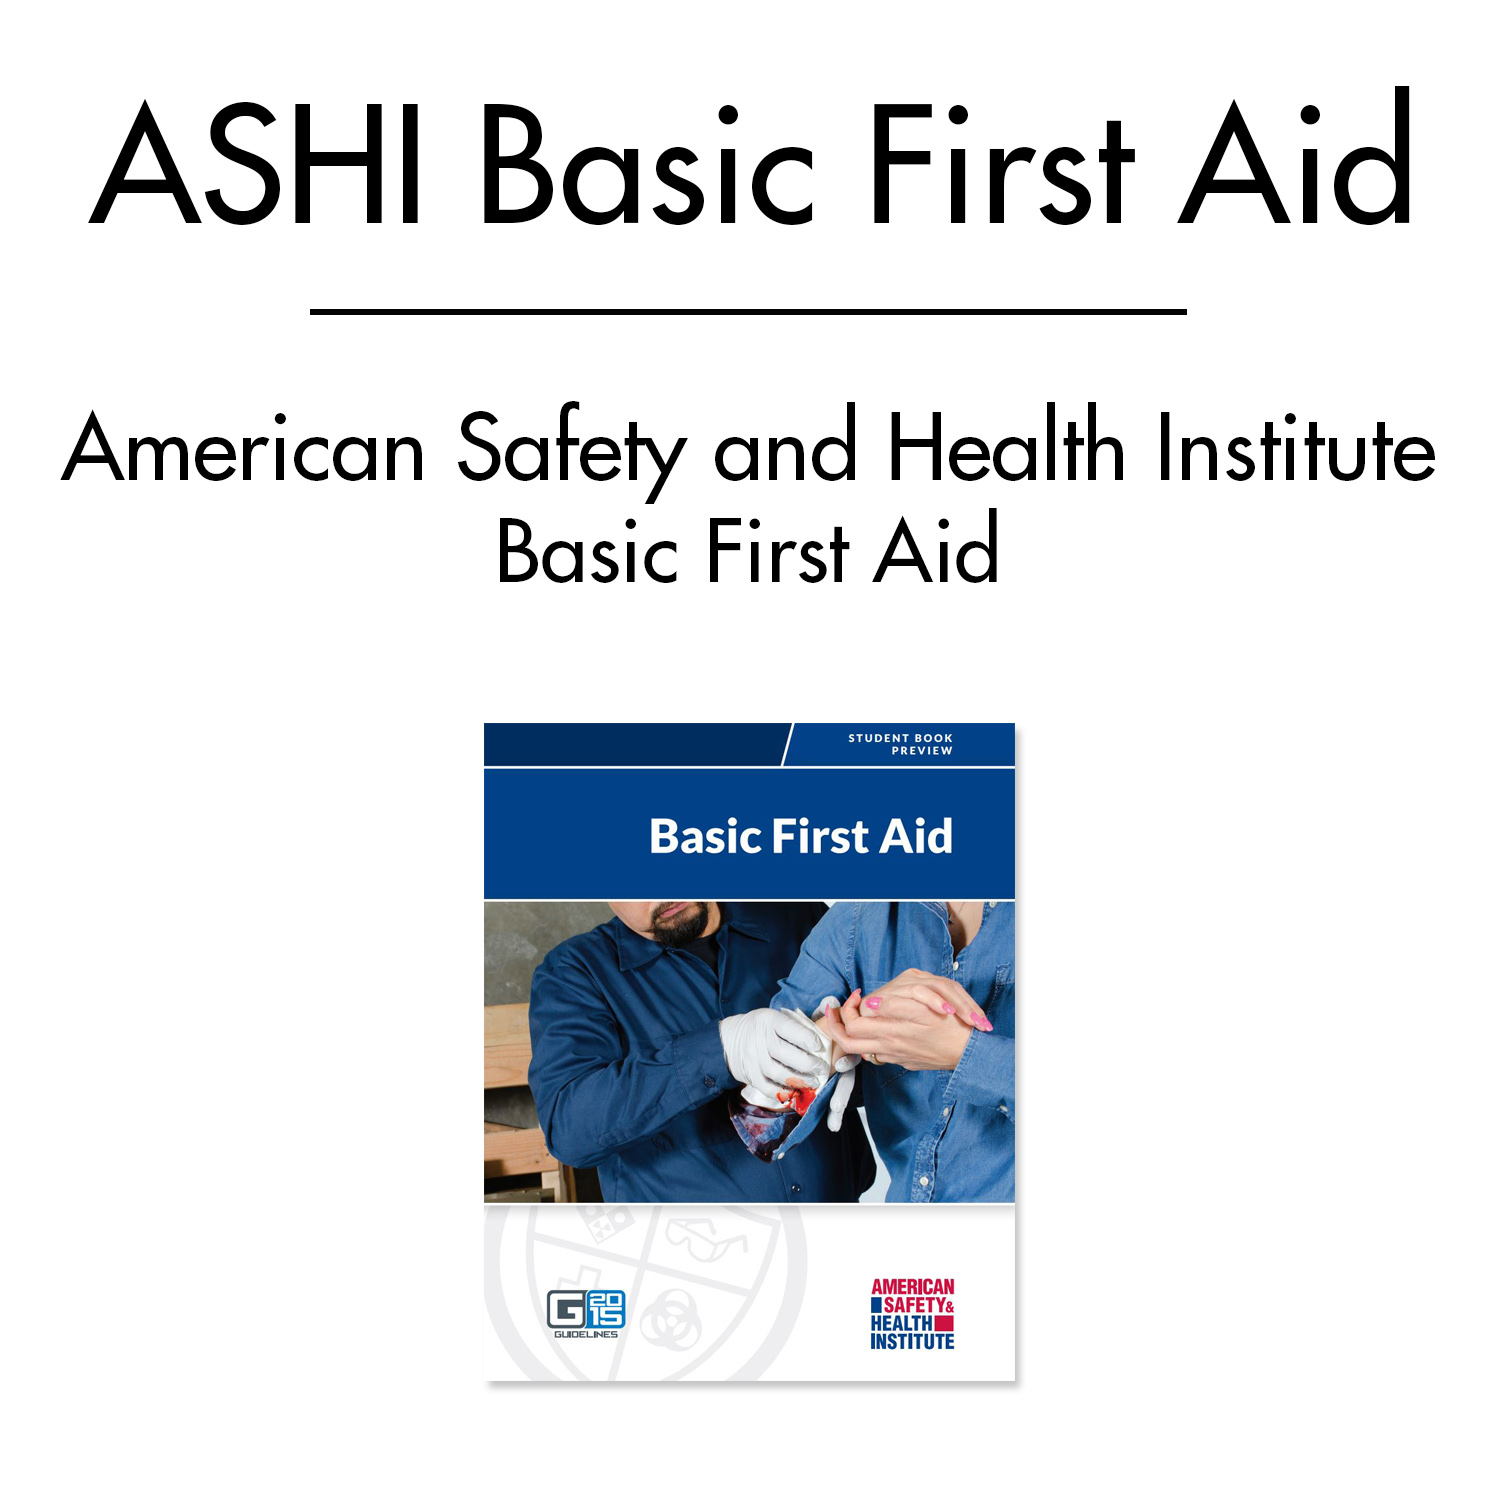 ASHI Basic First Aid